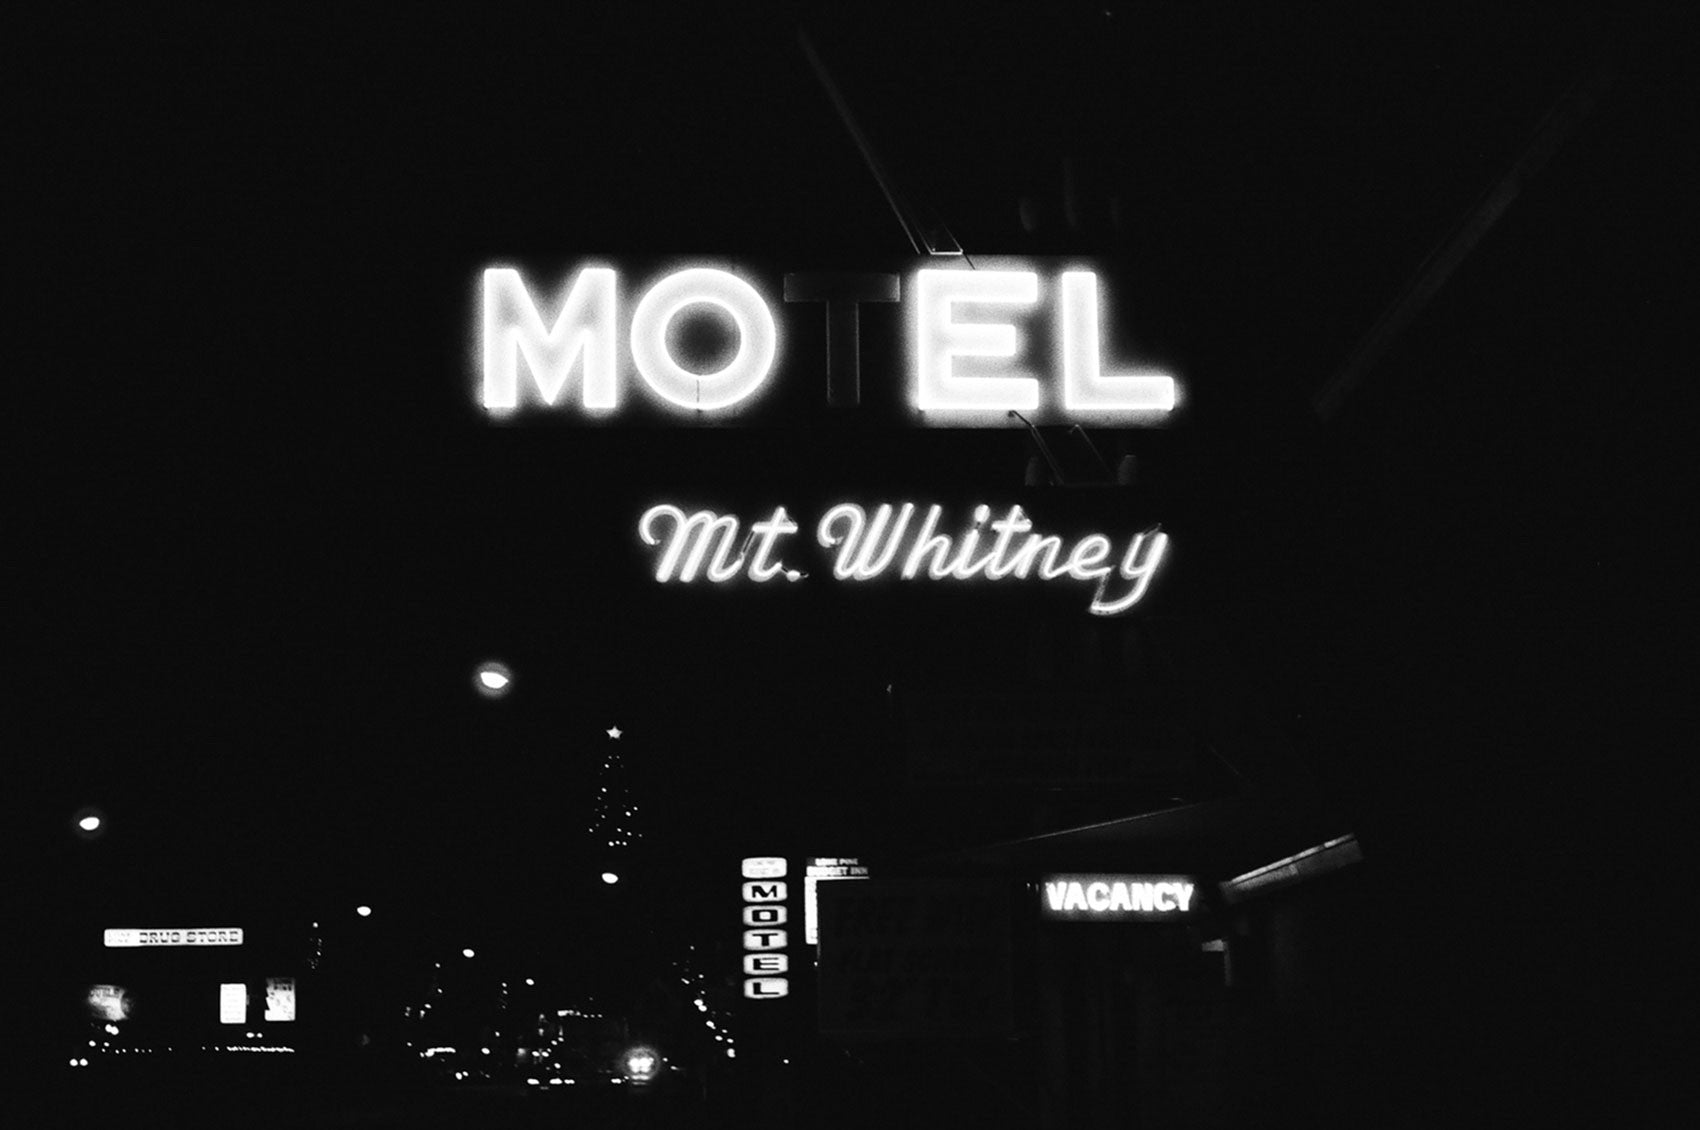 Mt. Whitney Motel by Corey Stanton | PRINT GALLERY